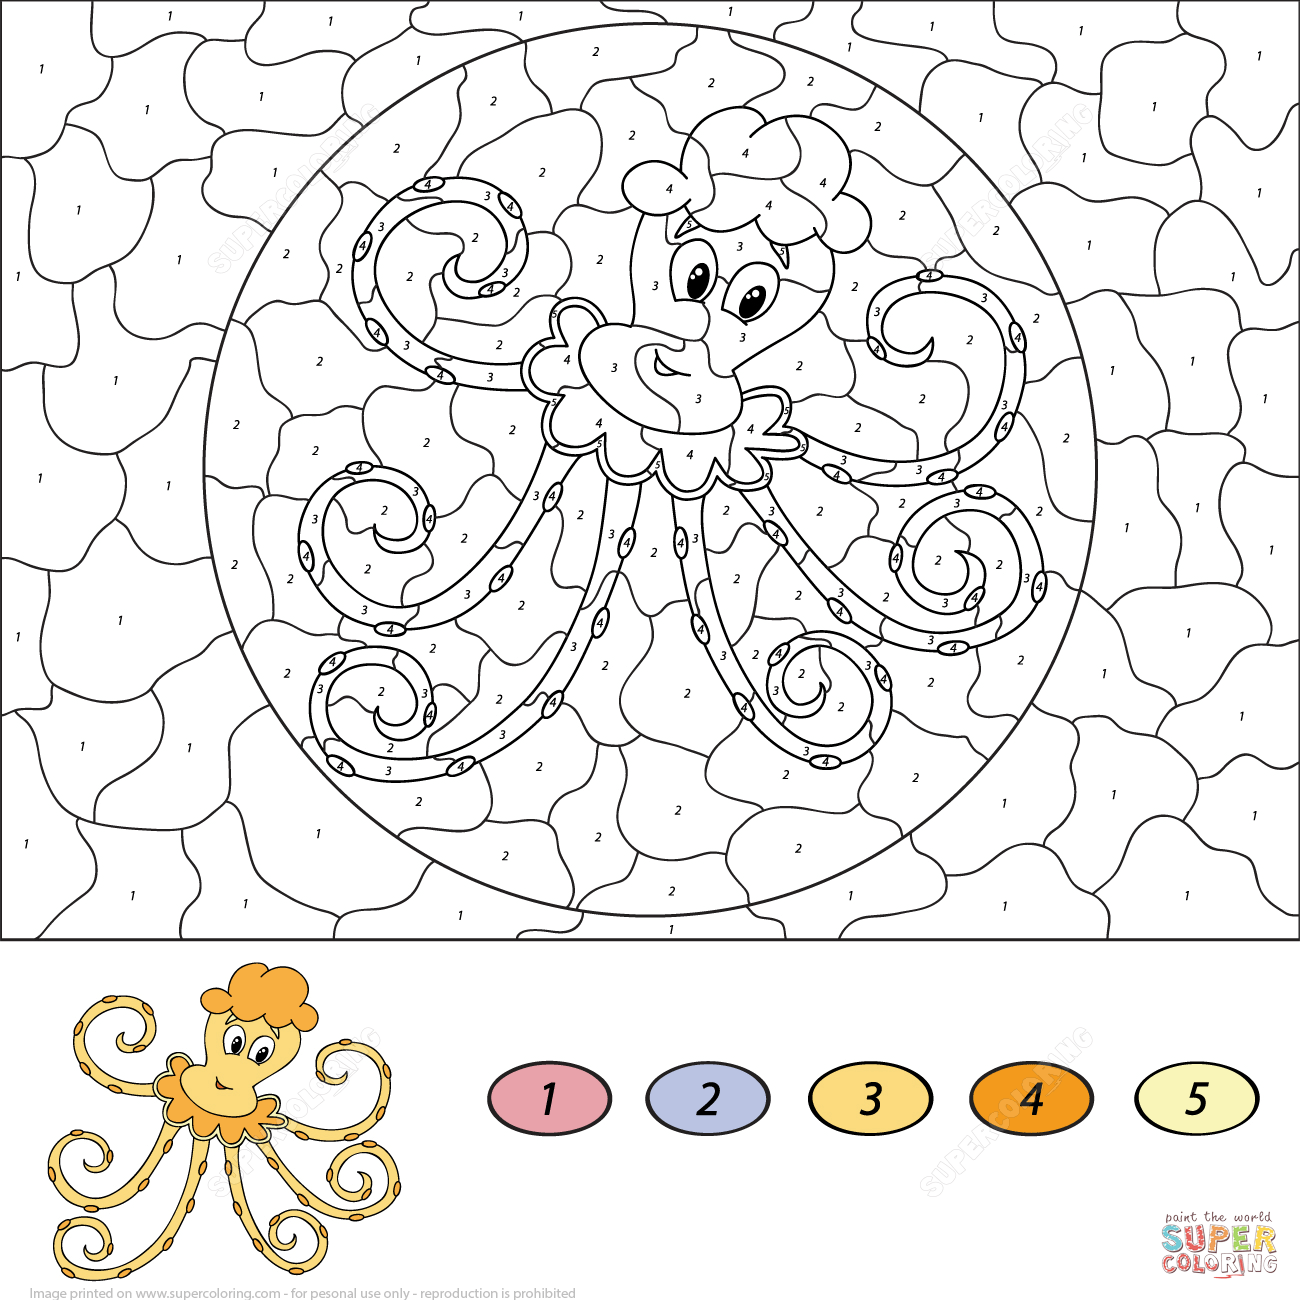 ocean-themed-color-number-coloring-pages-printable-pictures-cartoon ...